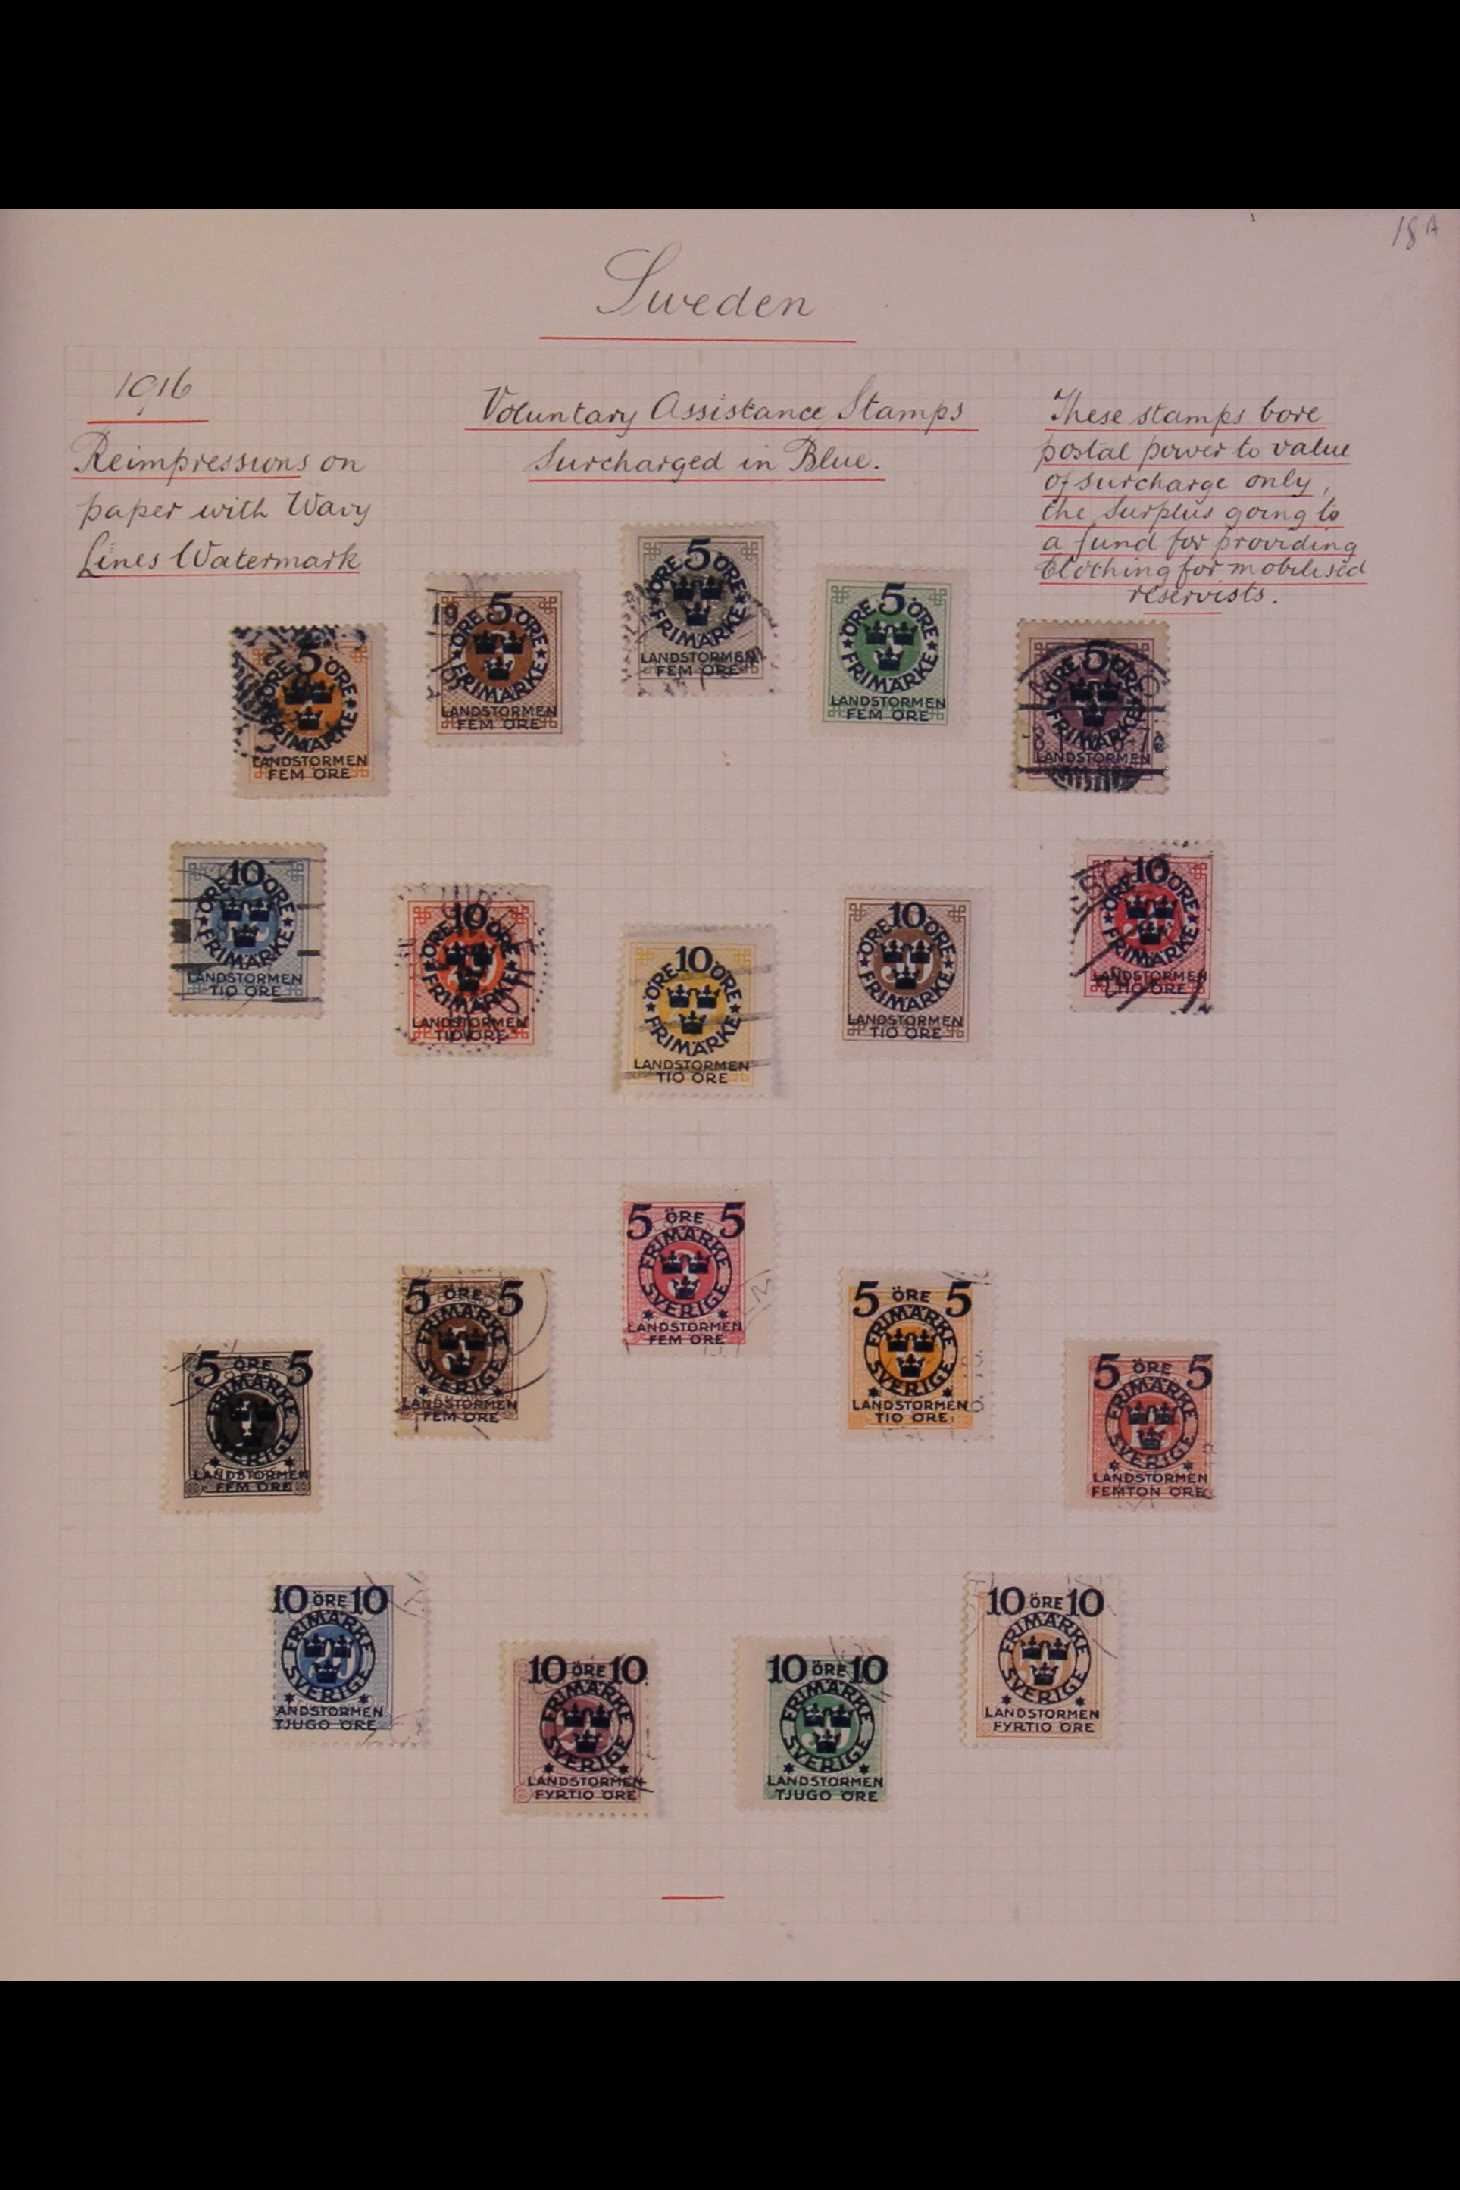 SWEDEN 1903-1966 USED COLLECTION incl. 1903 5k GPO, 1910-19 wmk Crown set, 1916 Landstorm surcharges - Image 4 of 12